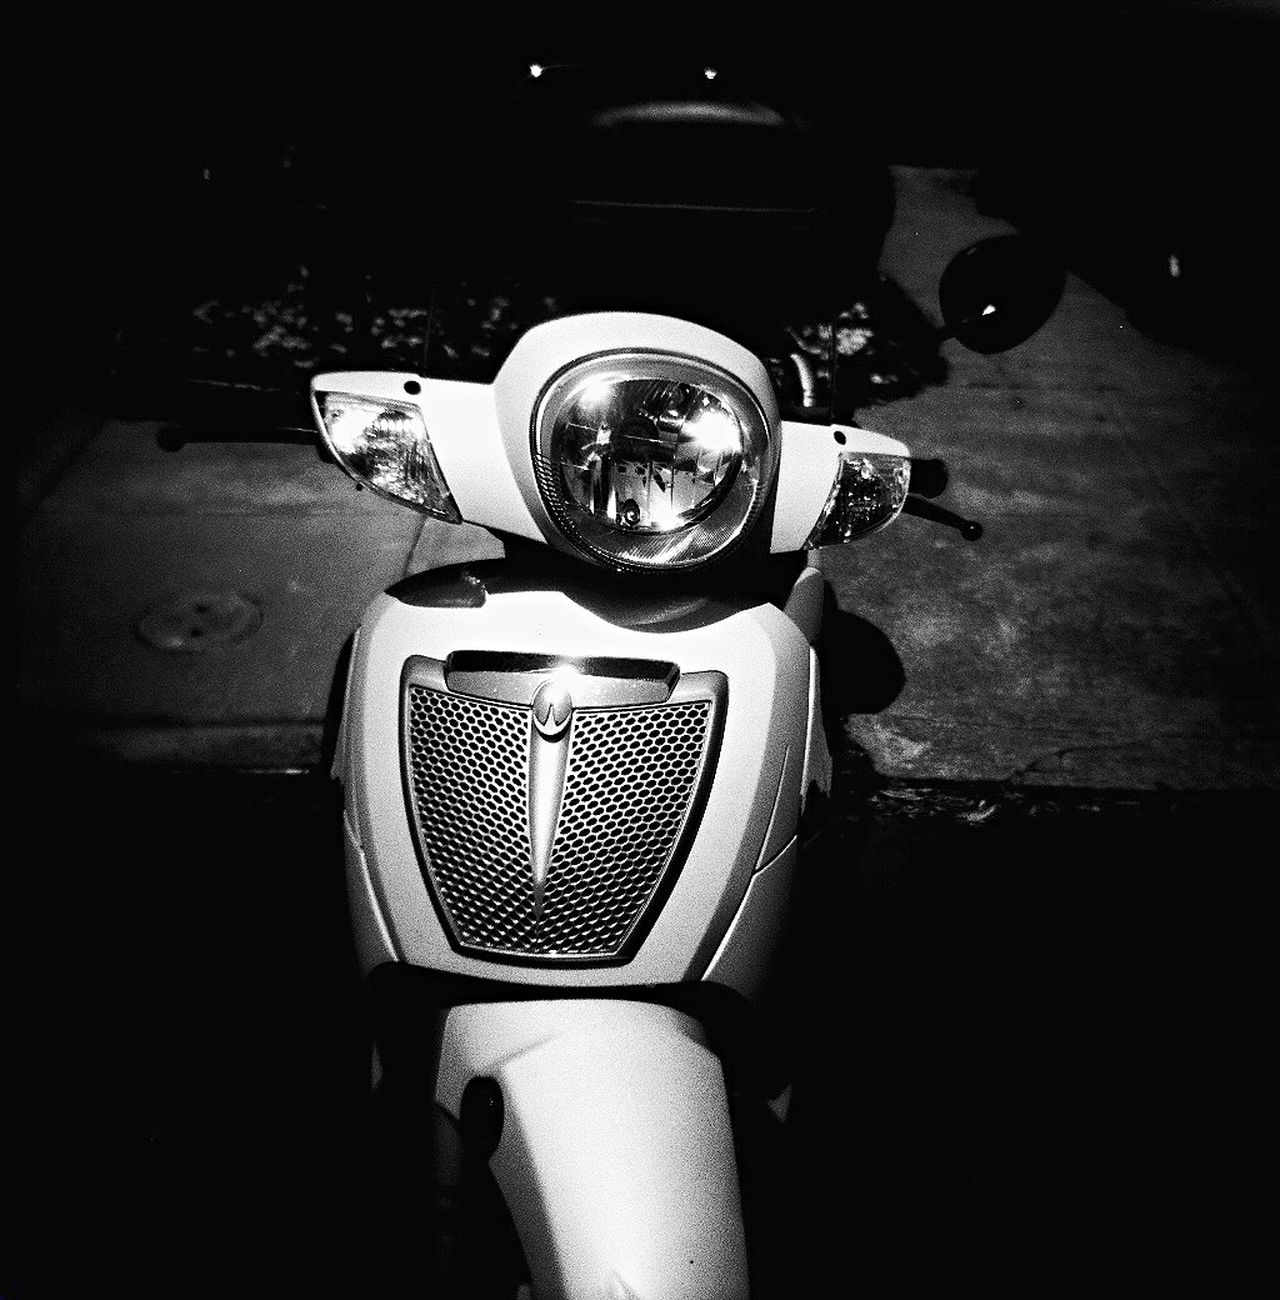 Close-up Koduckgirl Film Photography Film Blk N Wht Infrared Photography Vespa The City Light